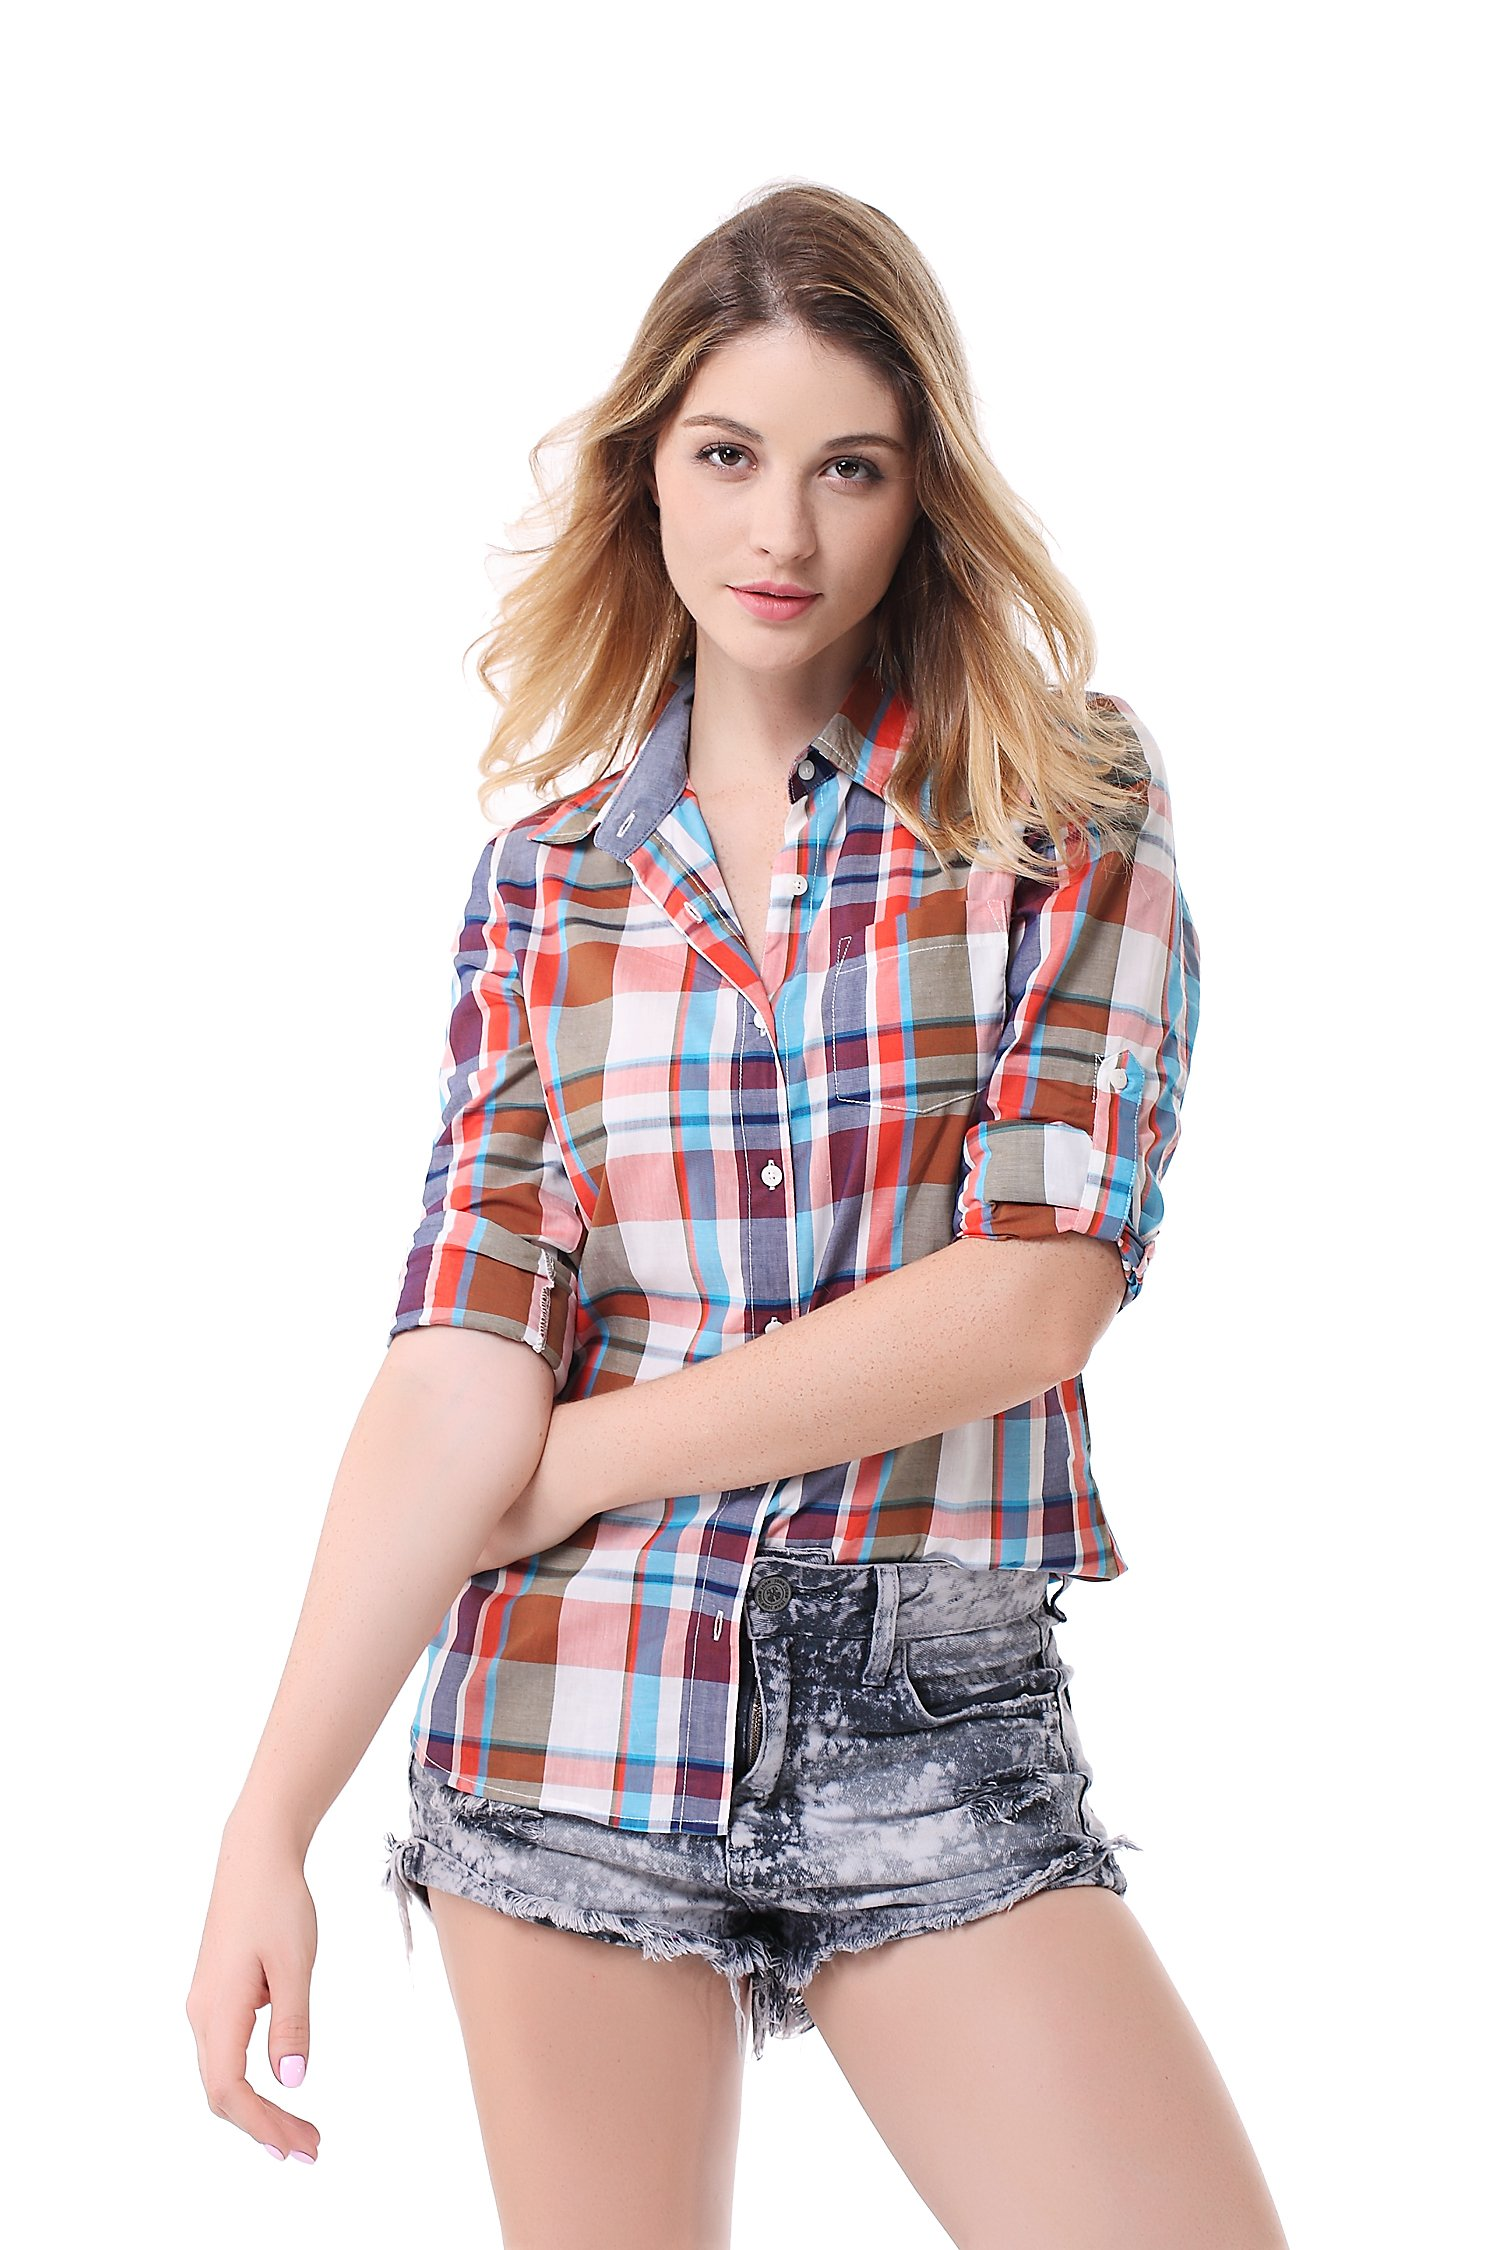 Pau1Hami1ton G-03 Women's Casual Plaid Long Sleeve Blouses Cotton Shirts Tops(M,15) by Pau1Hami1ton